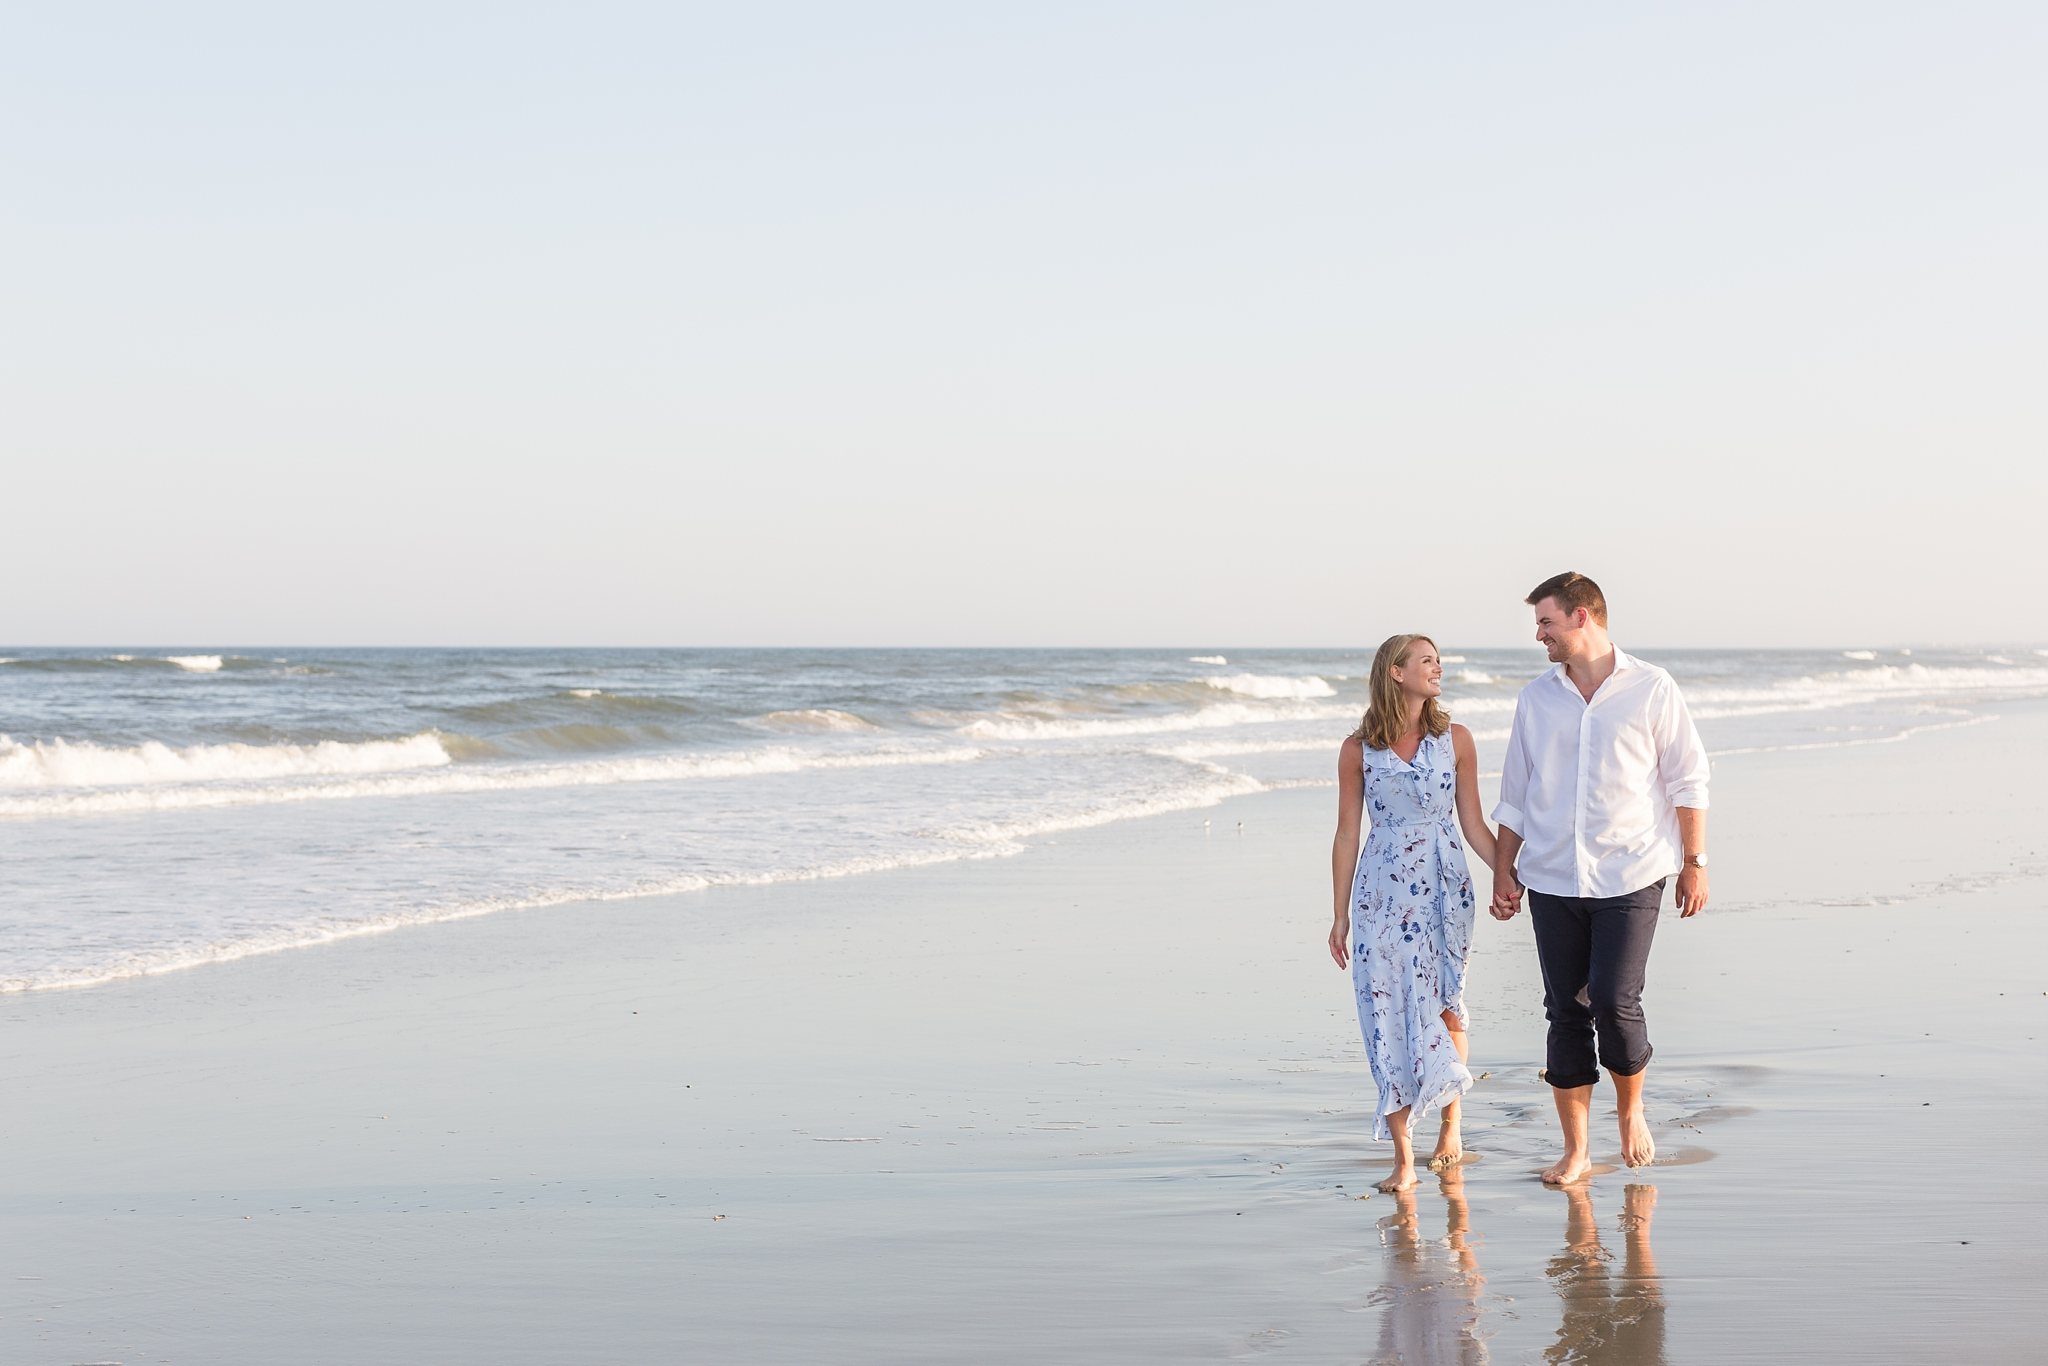 Sea_Isle_City_NJ_Beach_Engagement_Session_04.jpg